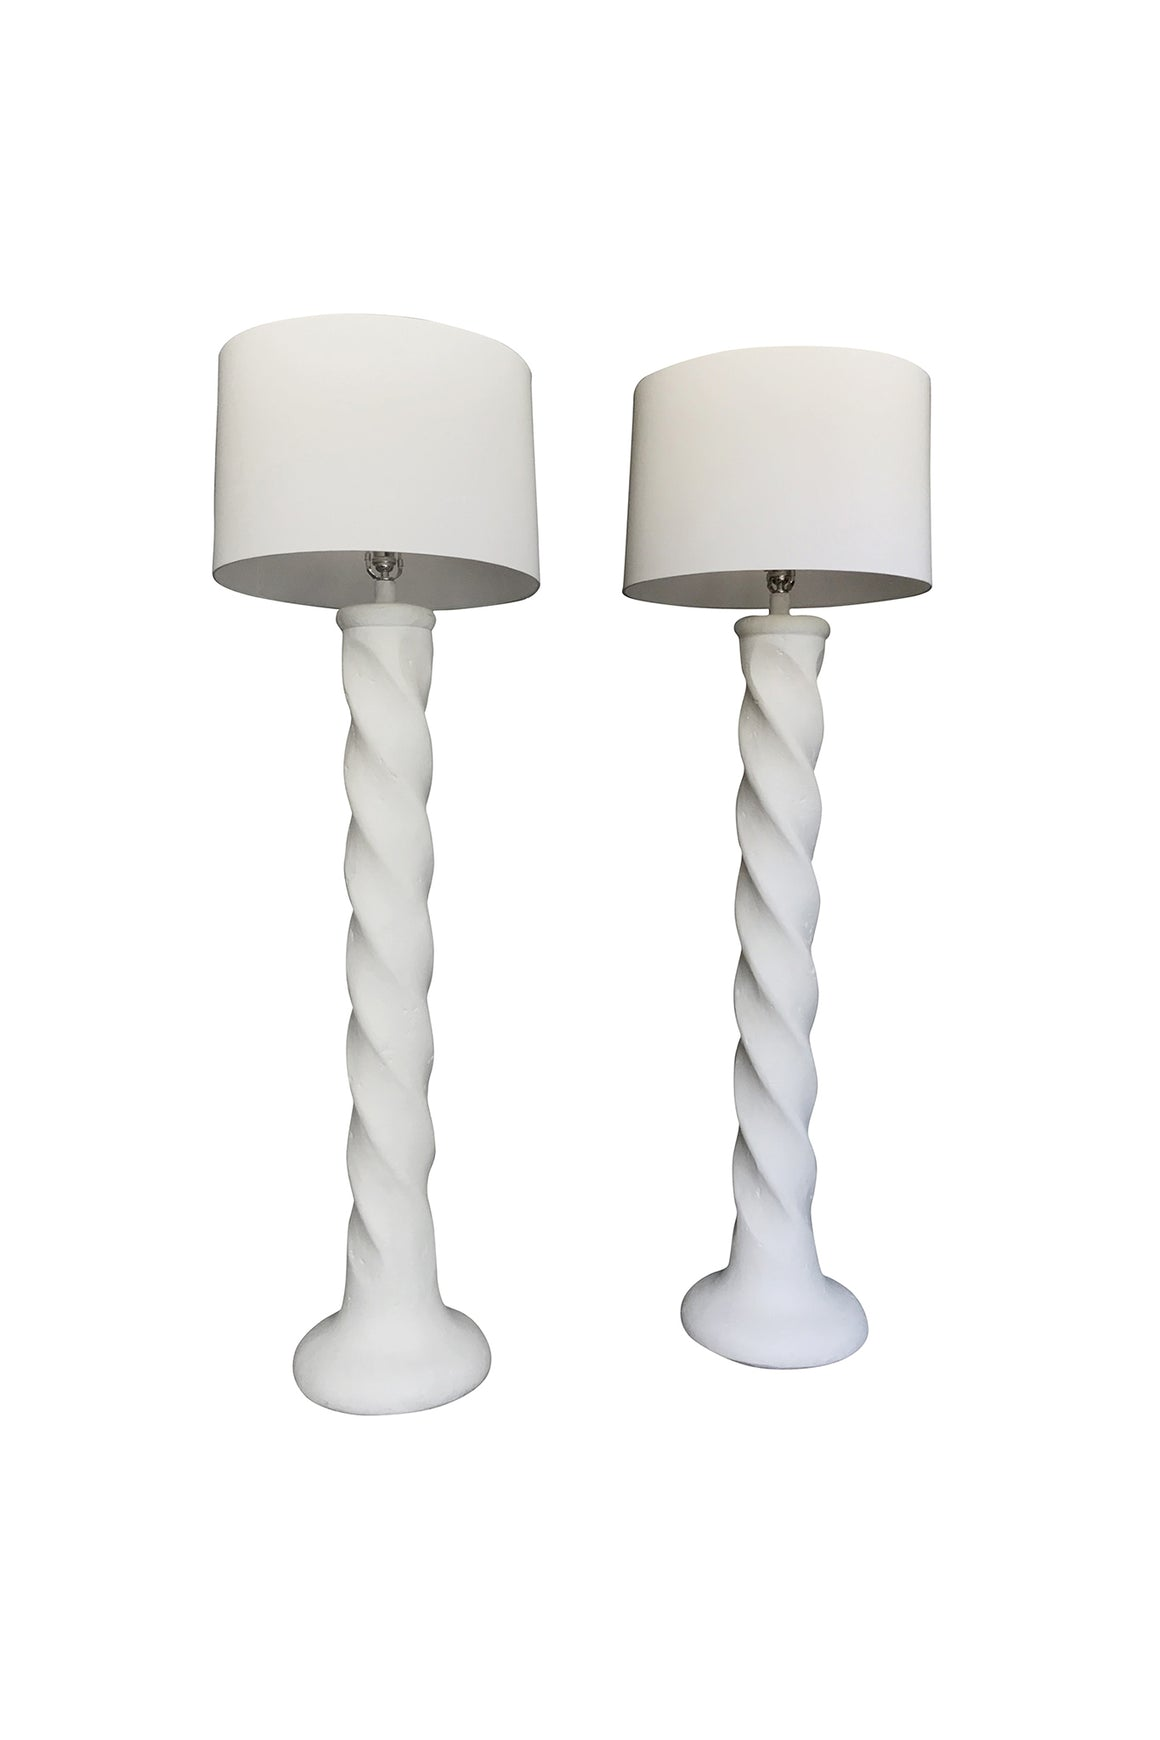 1970s Michael Taylor Spiral Column Lamps – a Pair